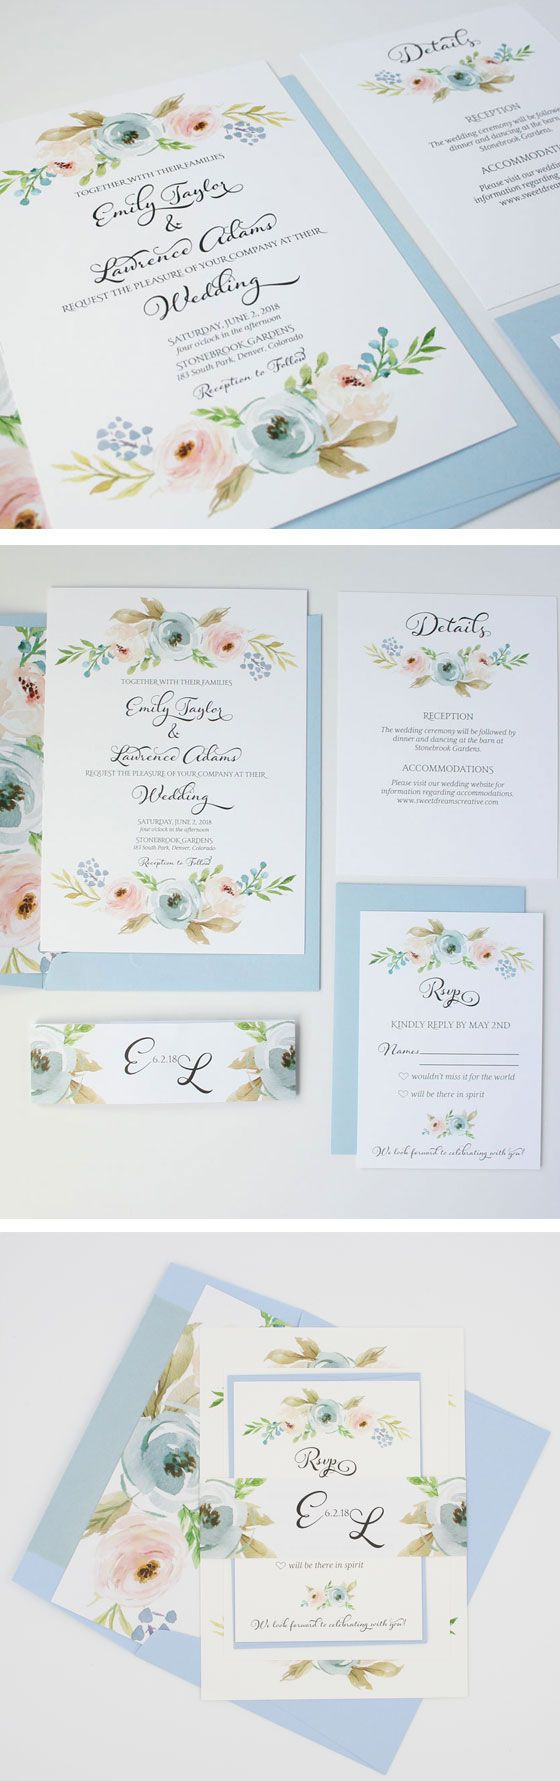 2155 best stationery images on pinterest garden gardens and house